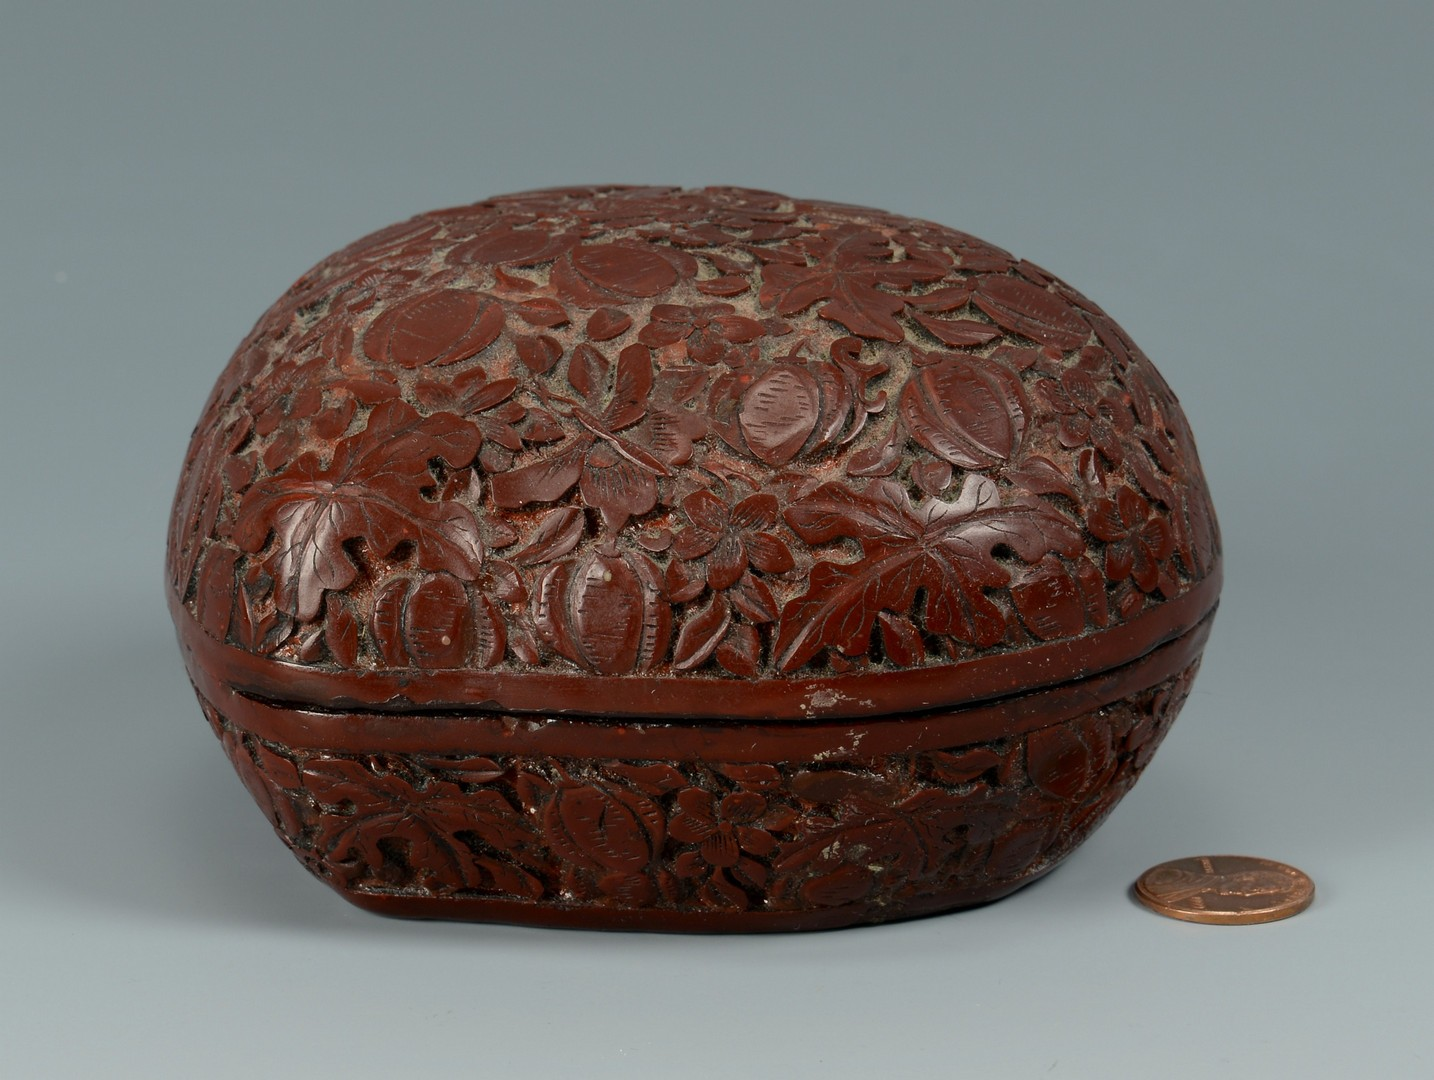 Lot 3383188: Chinese Shaped Cinnabar Box